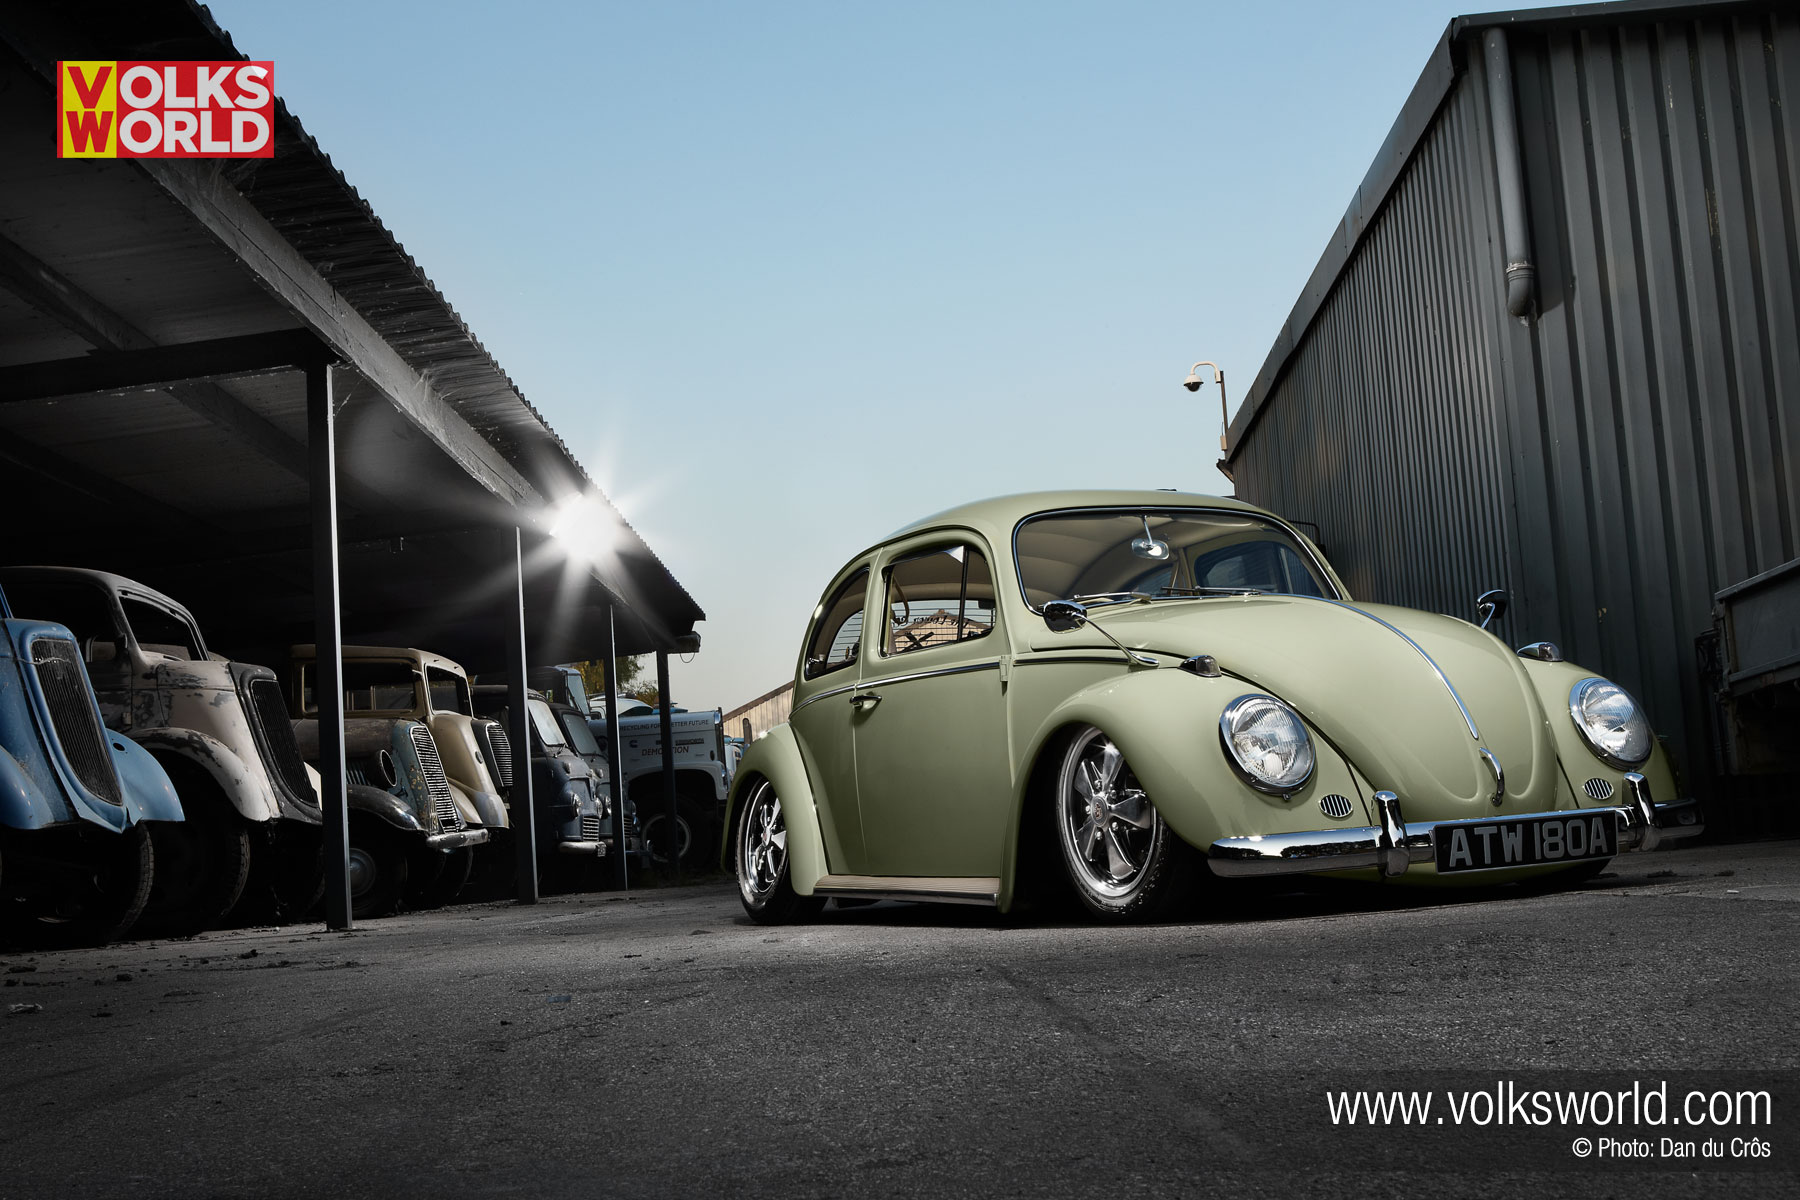 1963 Volkswagen Beetle   Best of 2014   VolksWorld 1800x1200